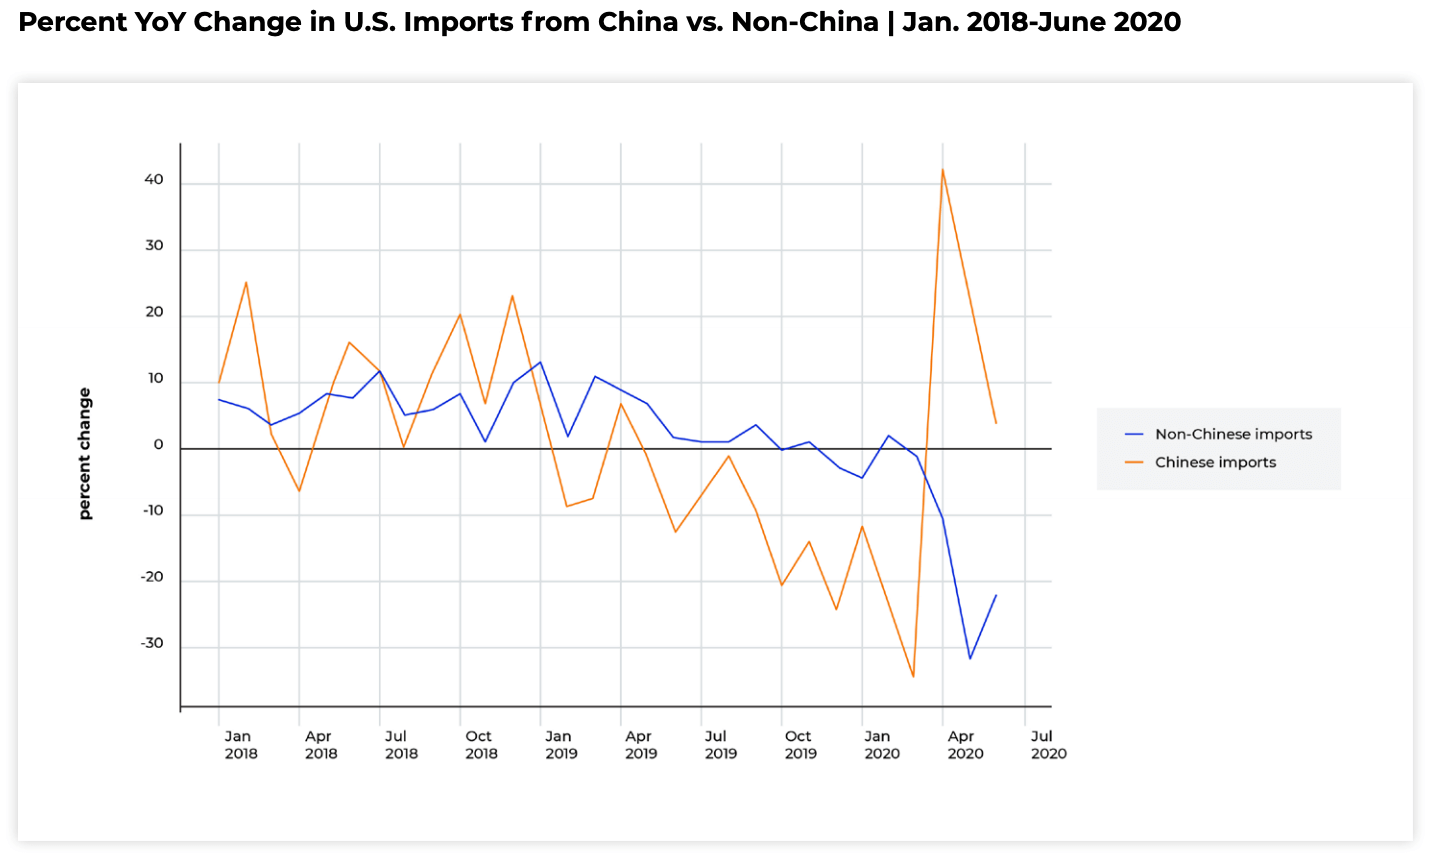 U.S. Imports from China 2020